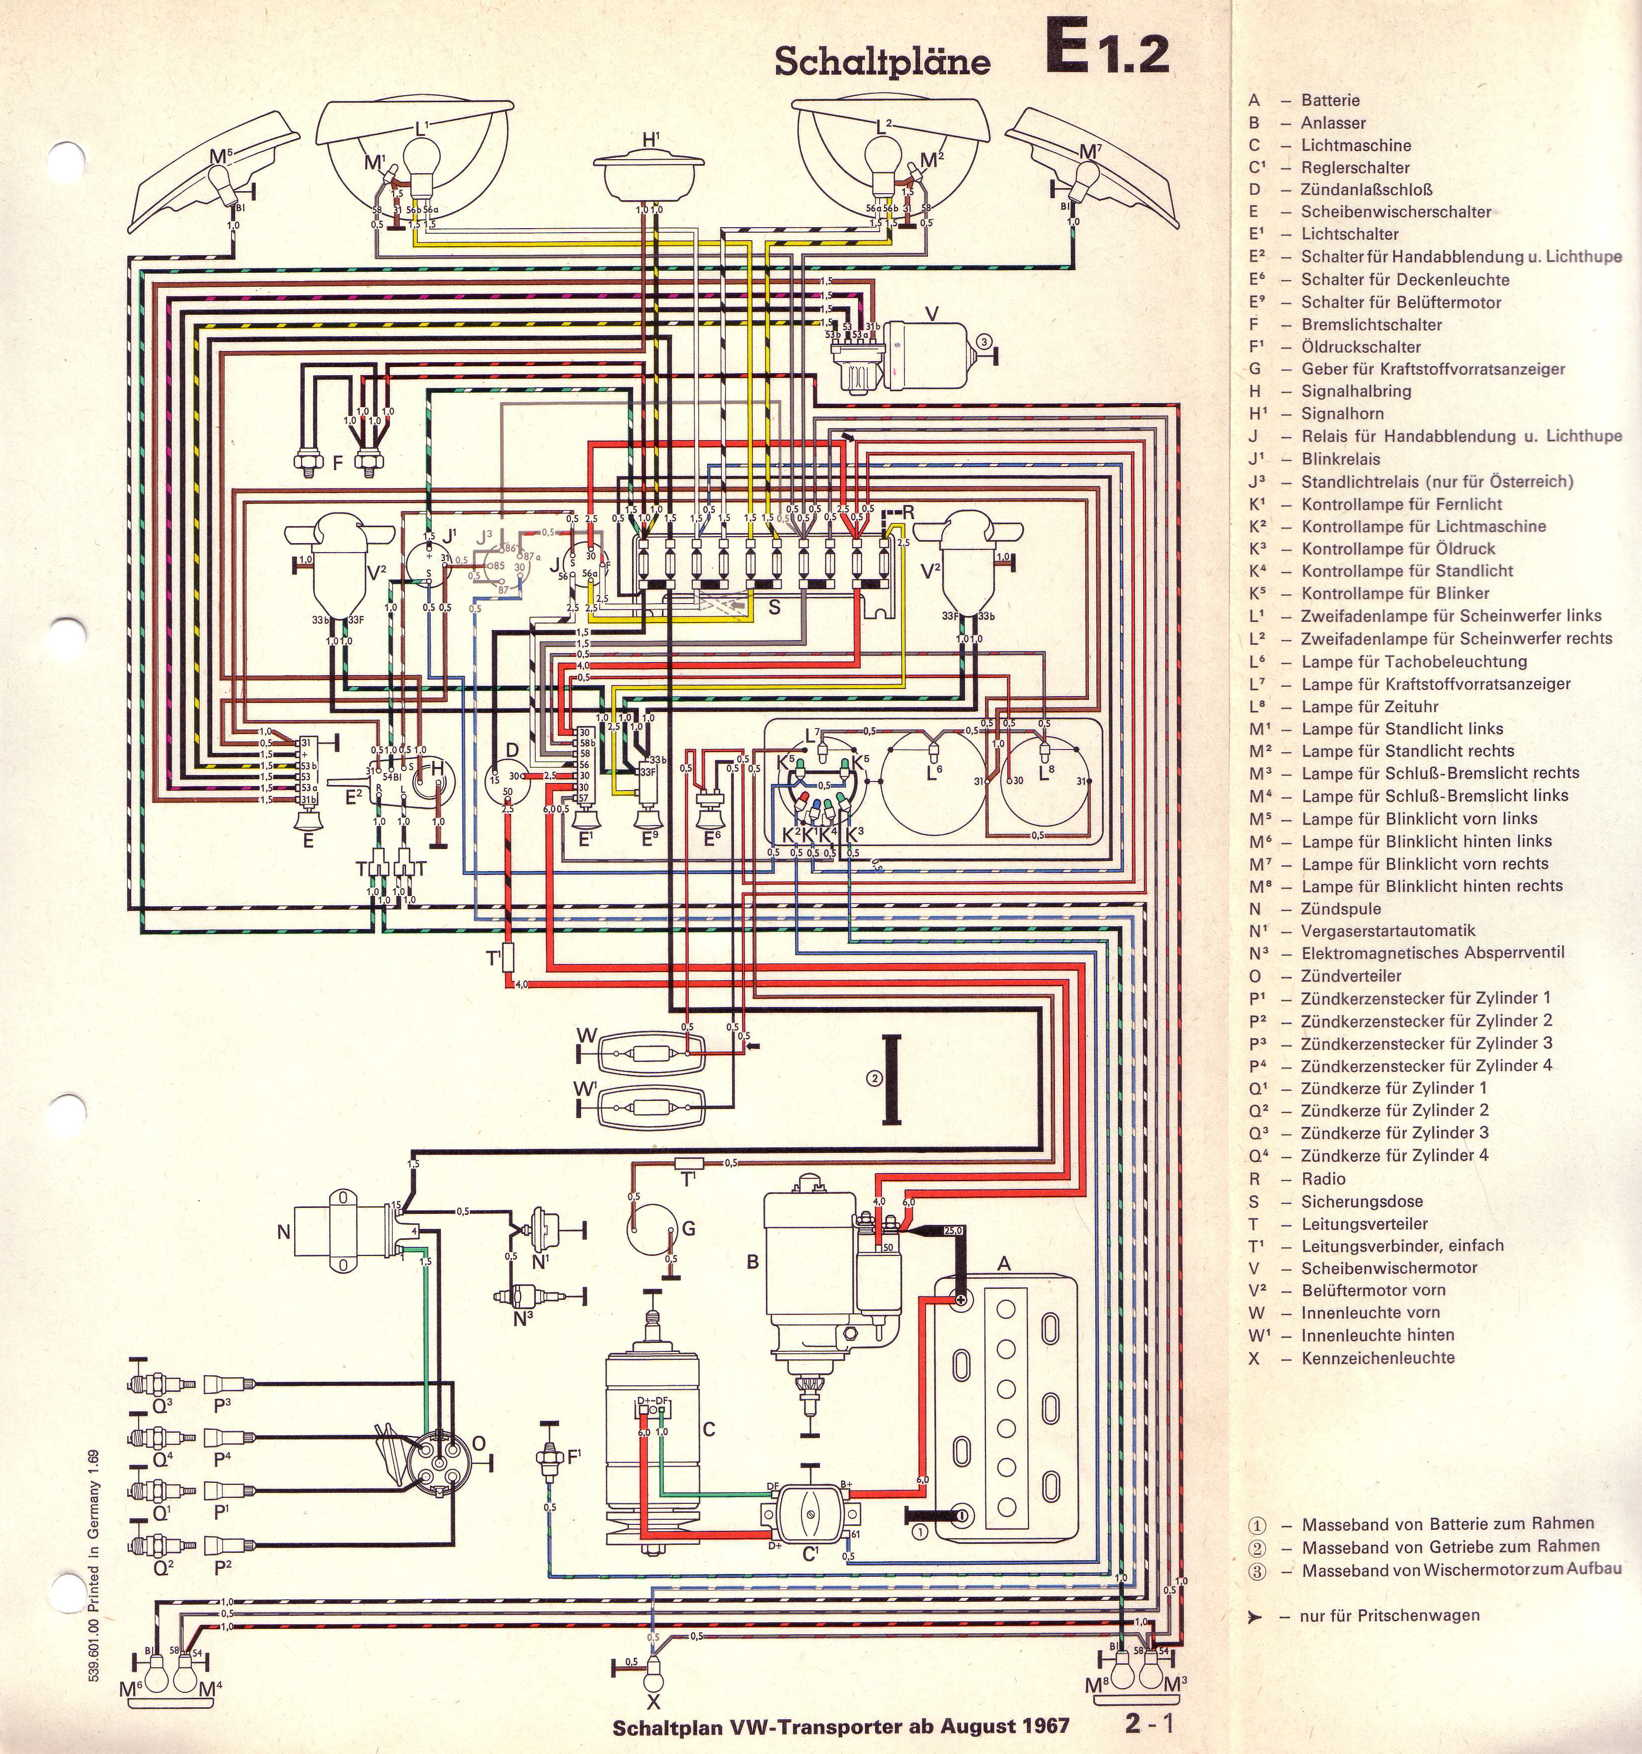 1969 Vw Transporter Wiring Diagram Circuit And Hub Images Gallery